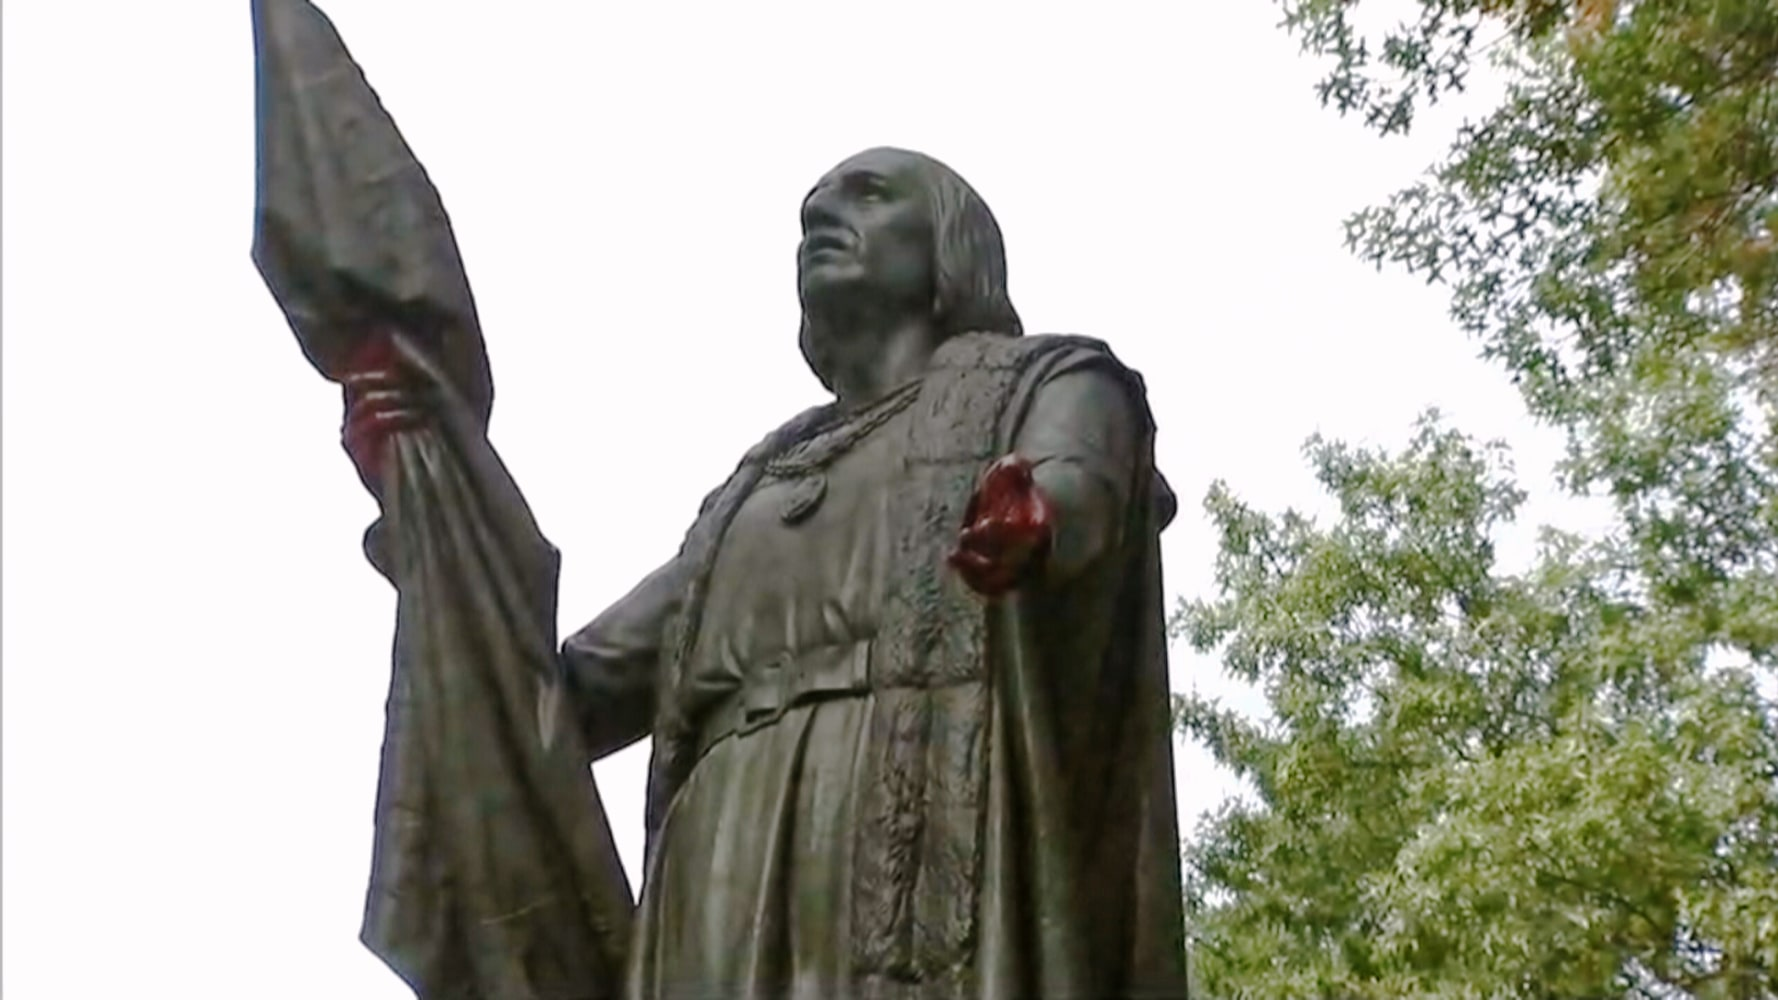 Christopher Columbus statue vandalized in Central Park